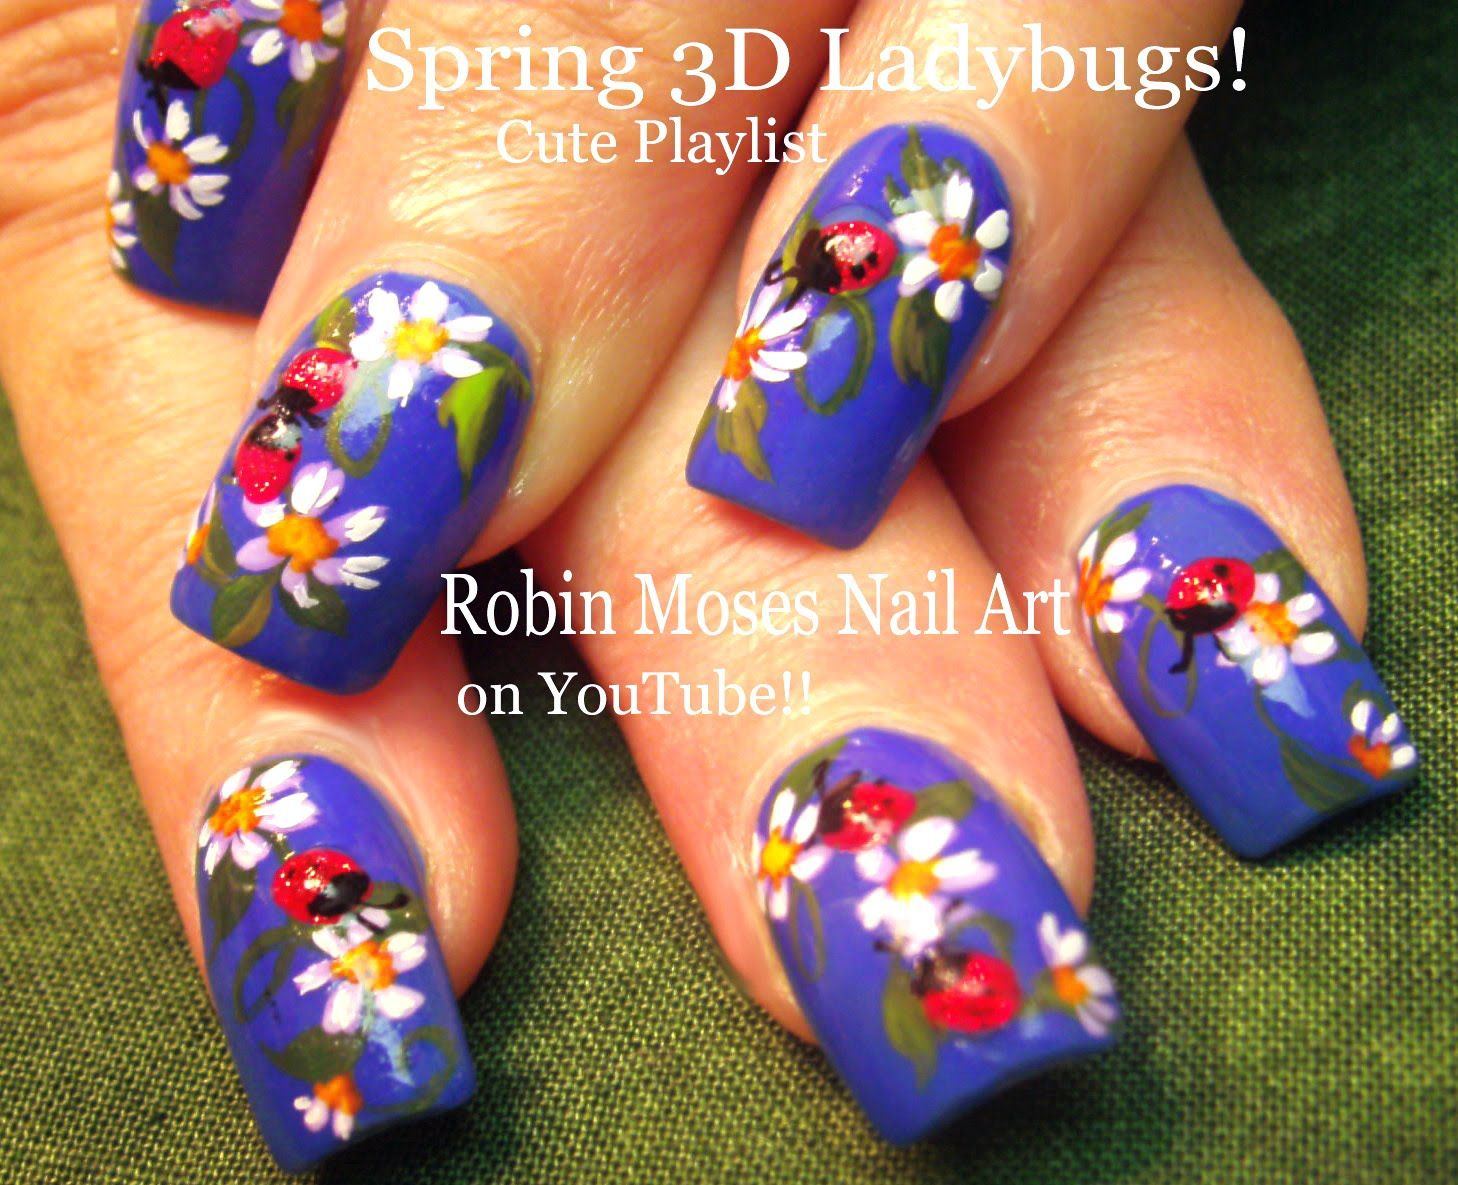 Nail art fun ladybug and daisy nails 3d nail design using gel robin moses nail art ladybug nails cute summer nails daisy nails white daisies nail tutorials nail art nails how to nails summer nails prinsesfo Gallery